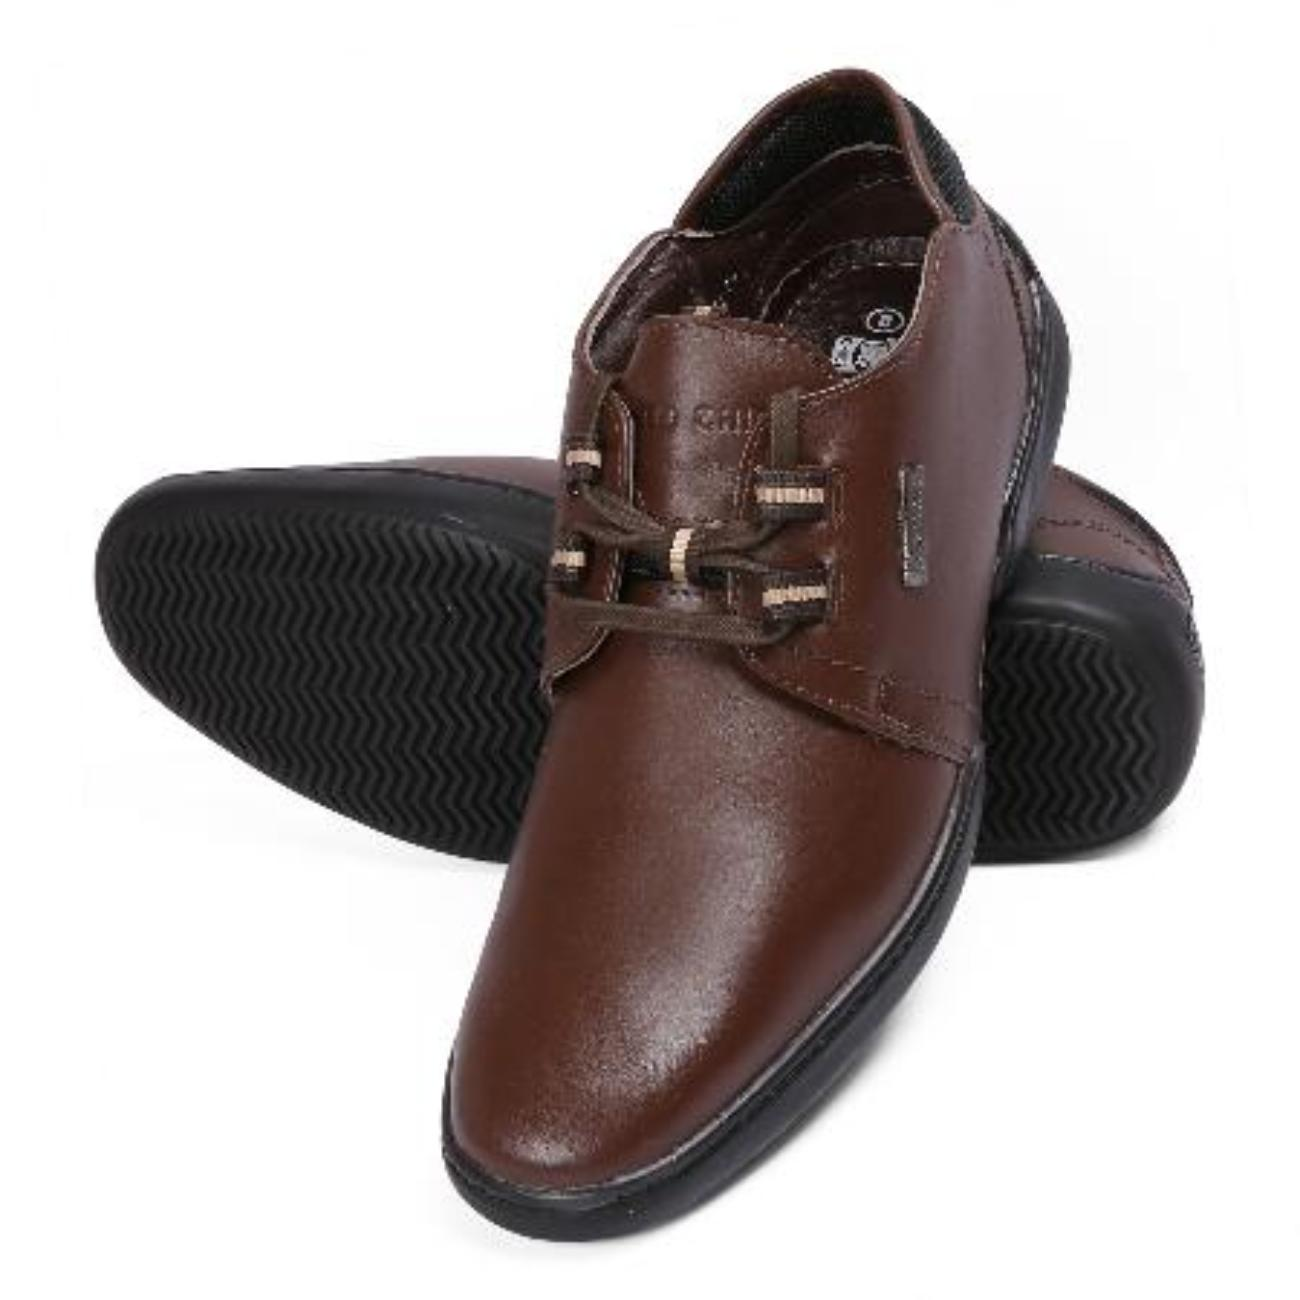 brown casual leather shoes rubber sole